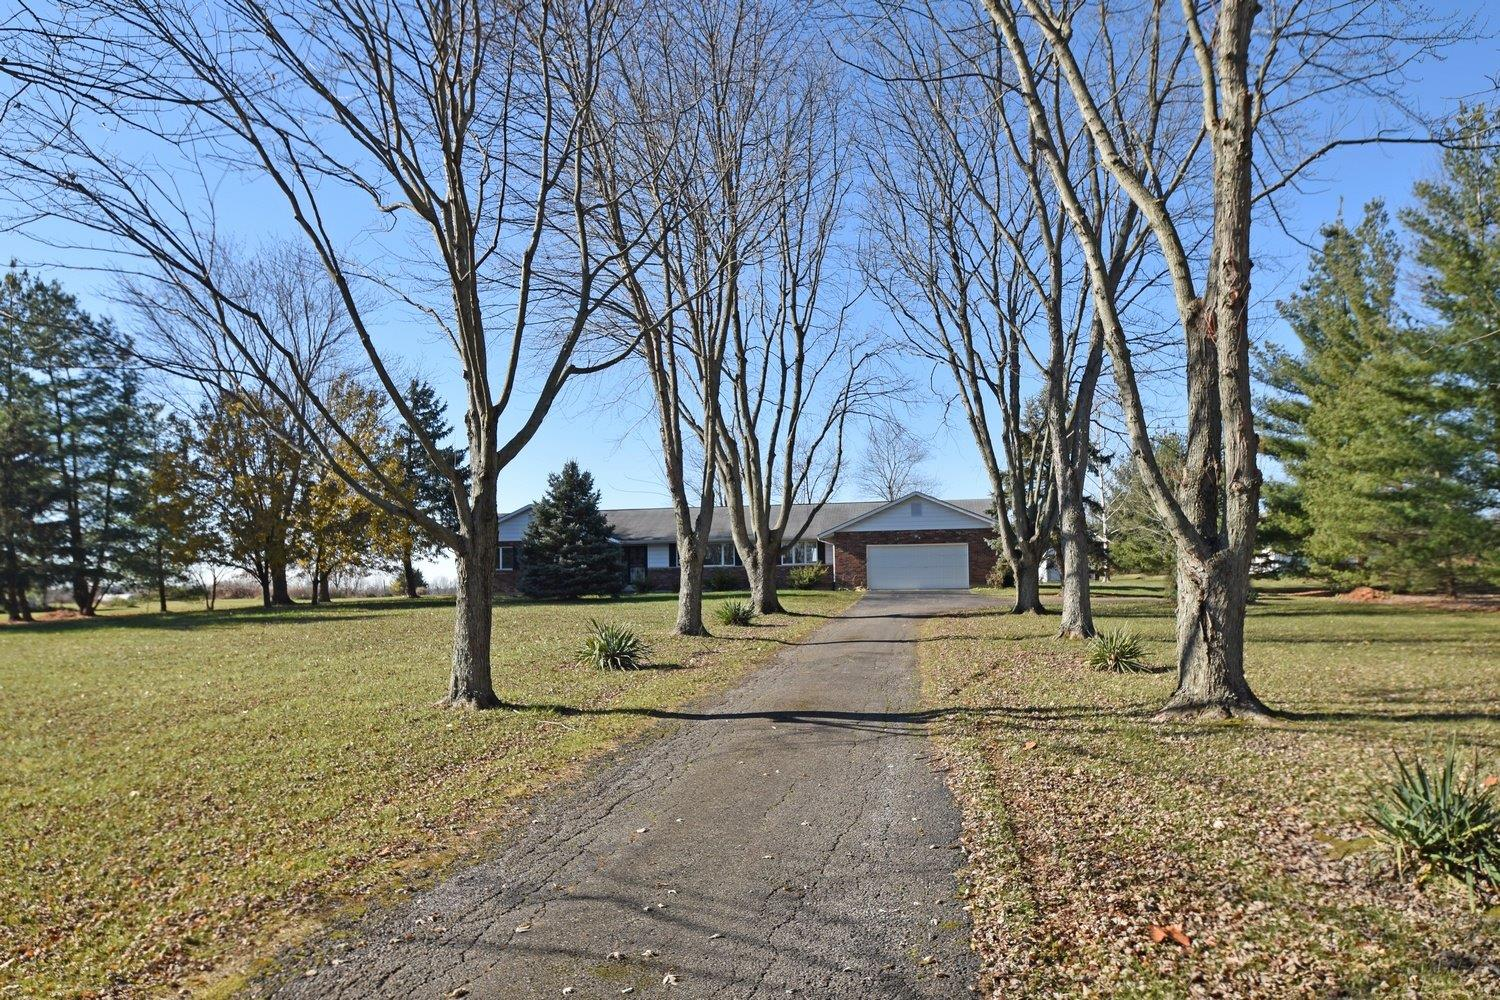 3455 Oxford Reily Rd Reily Twp., OH